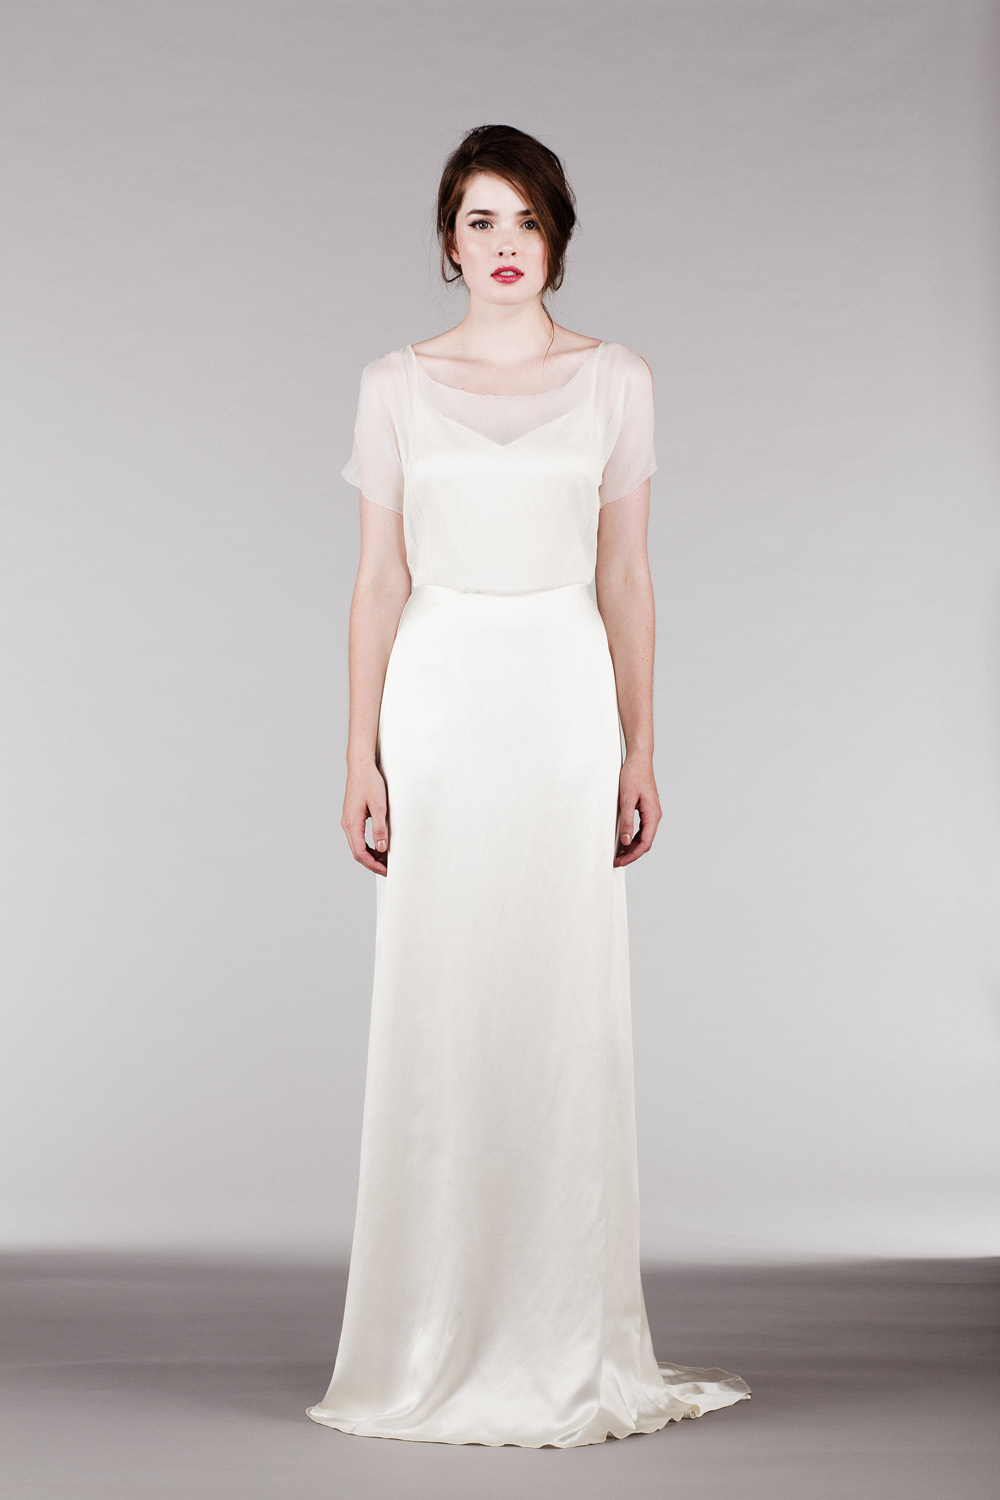 Silk Chiffon Wedding Dress With Illusion Neckline